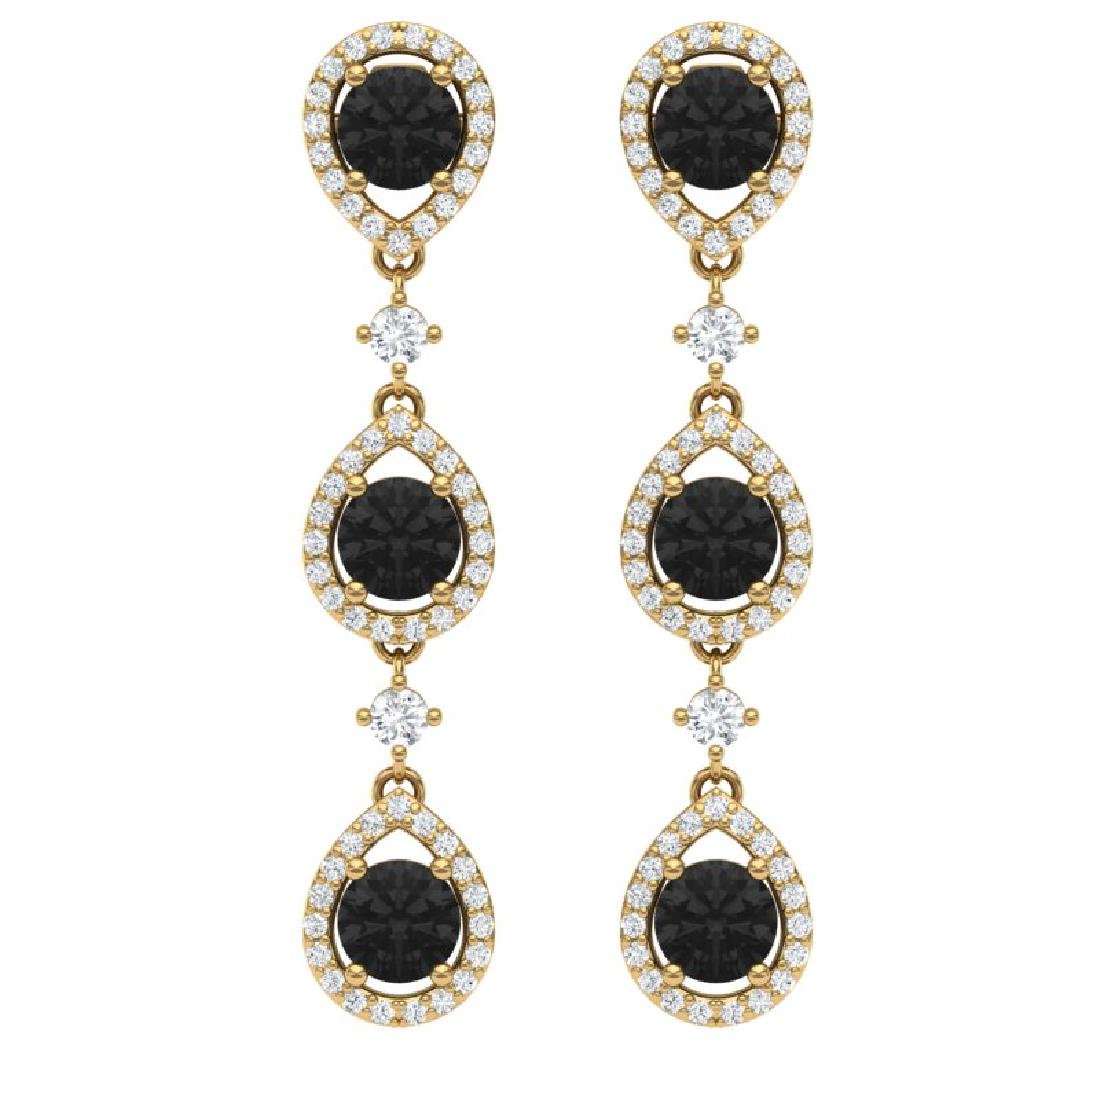 4.7 CTW Certified Black VS Diamond Earrings 18K Yellow